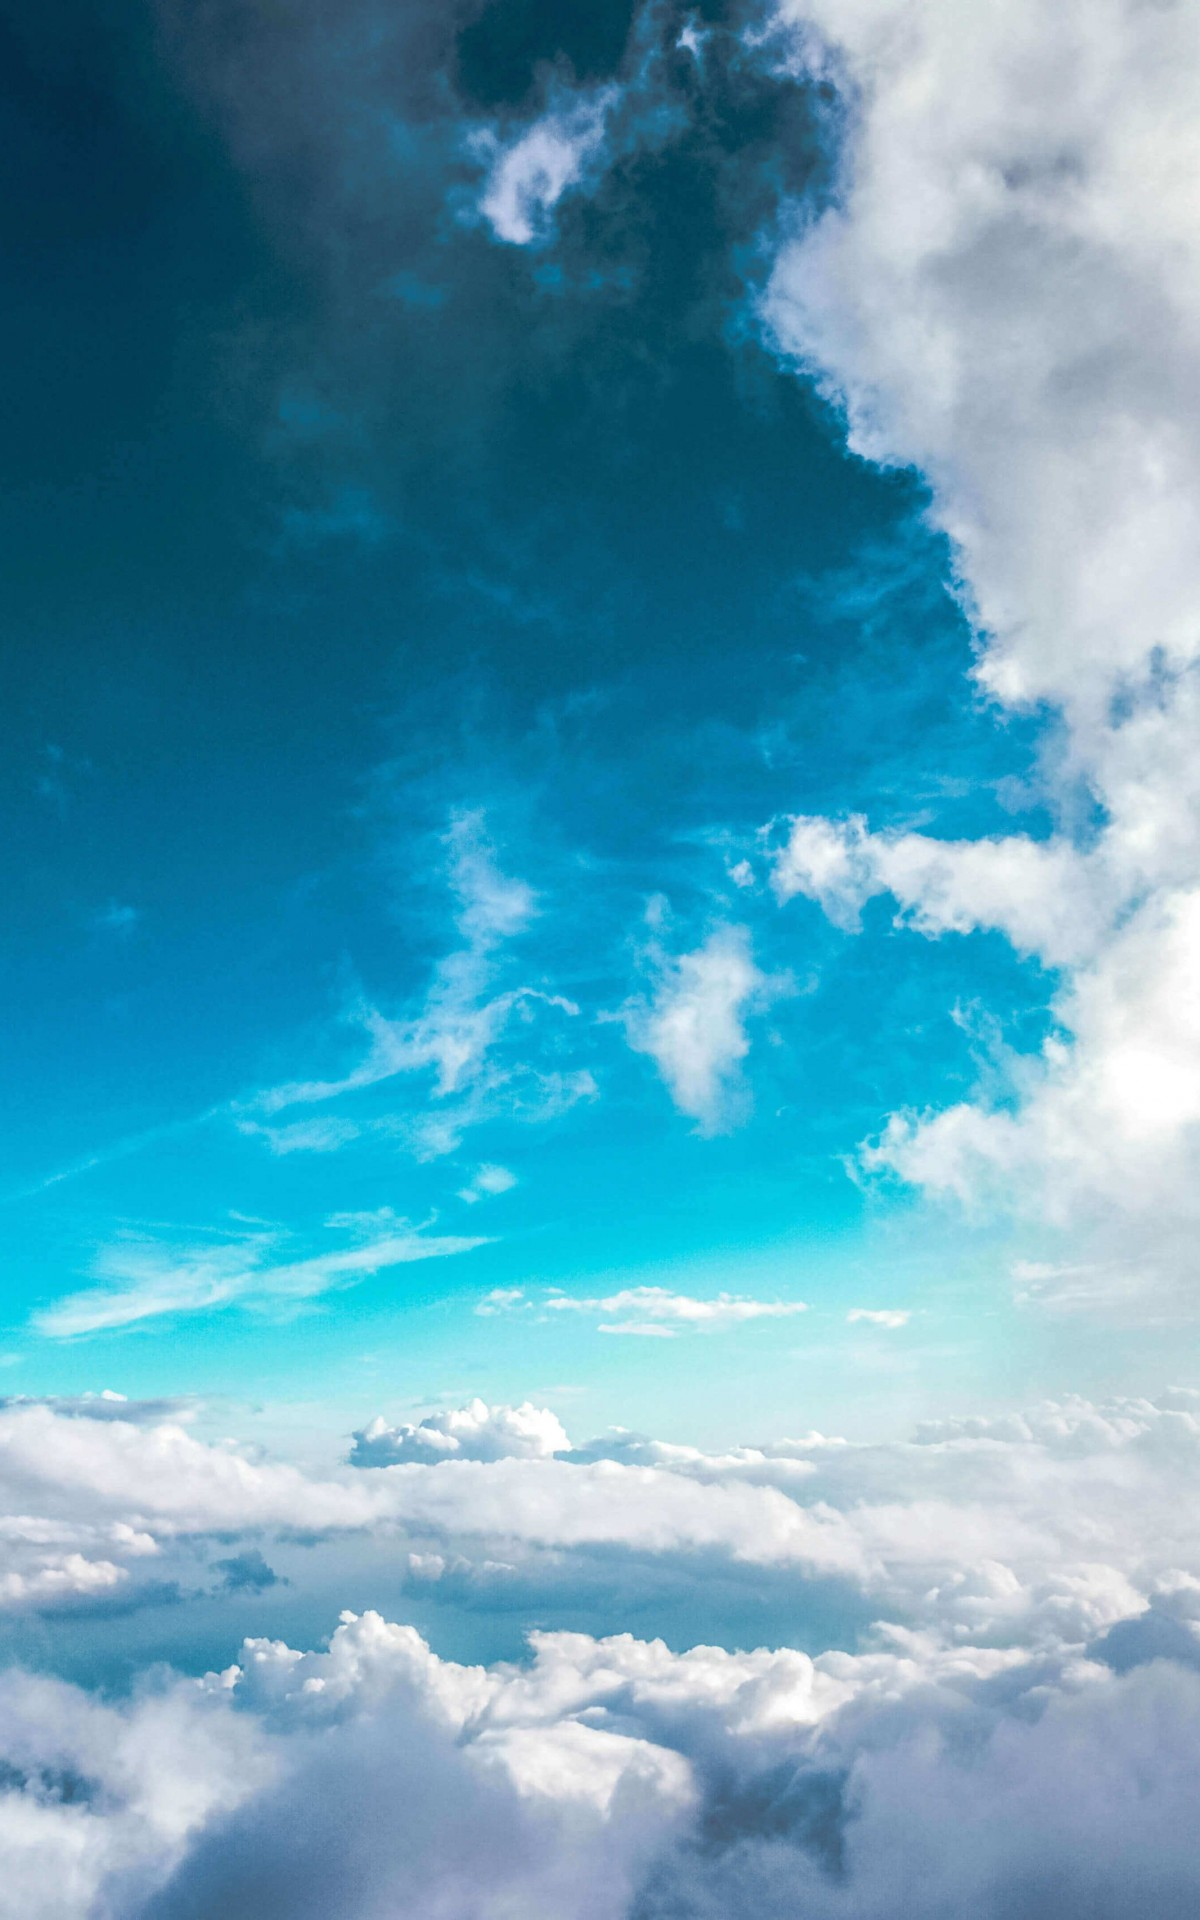 Cloudy Blue Sky Wallpaper for Amazon Kindle Fire HDX